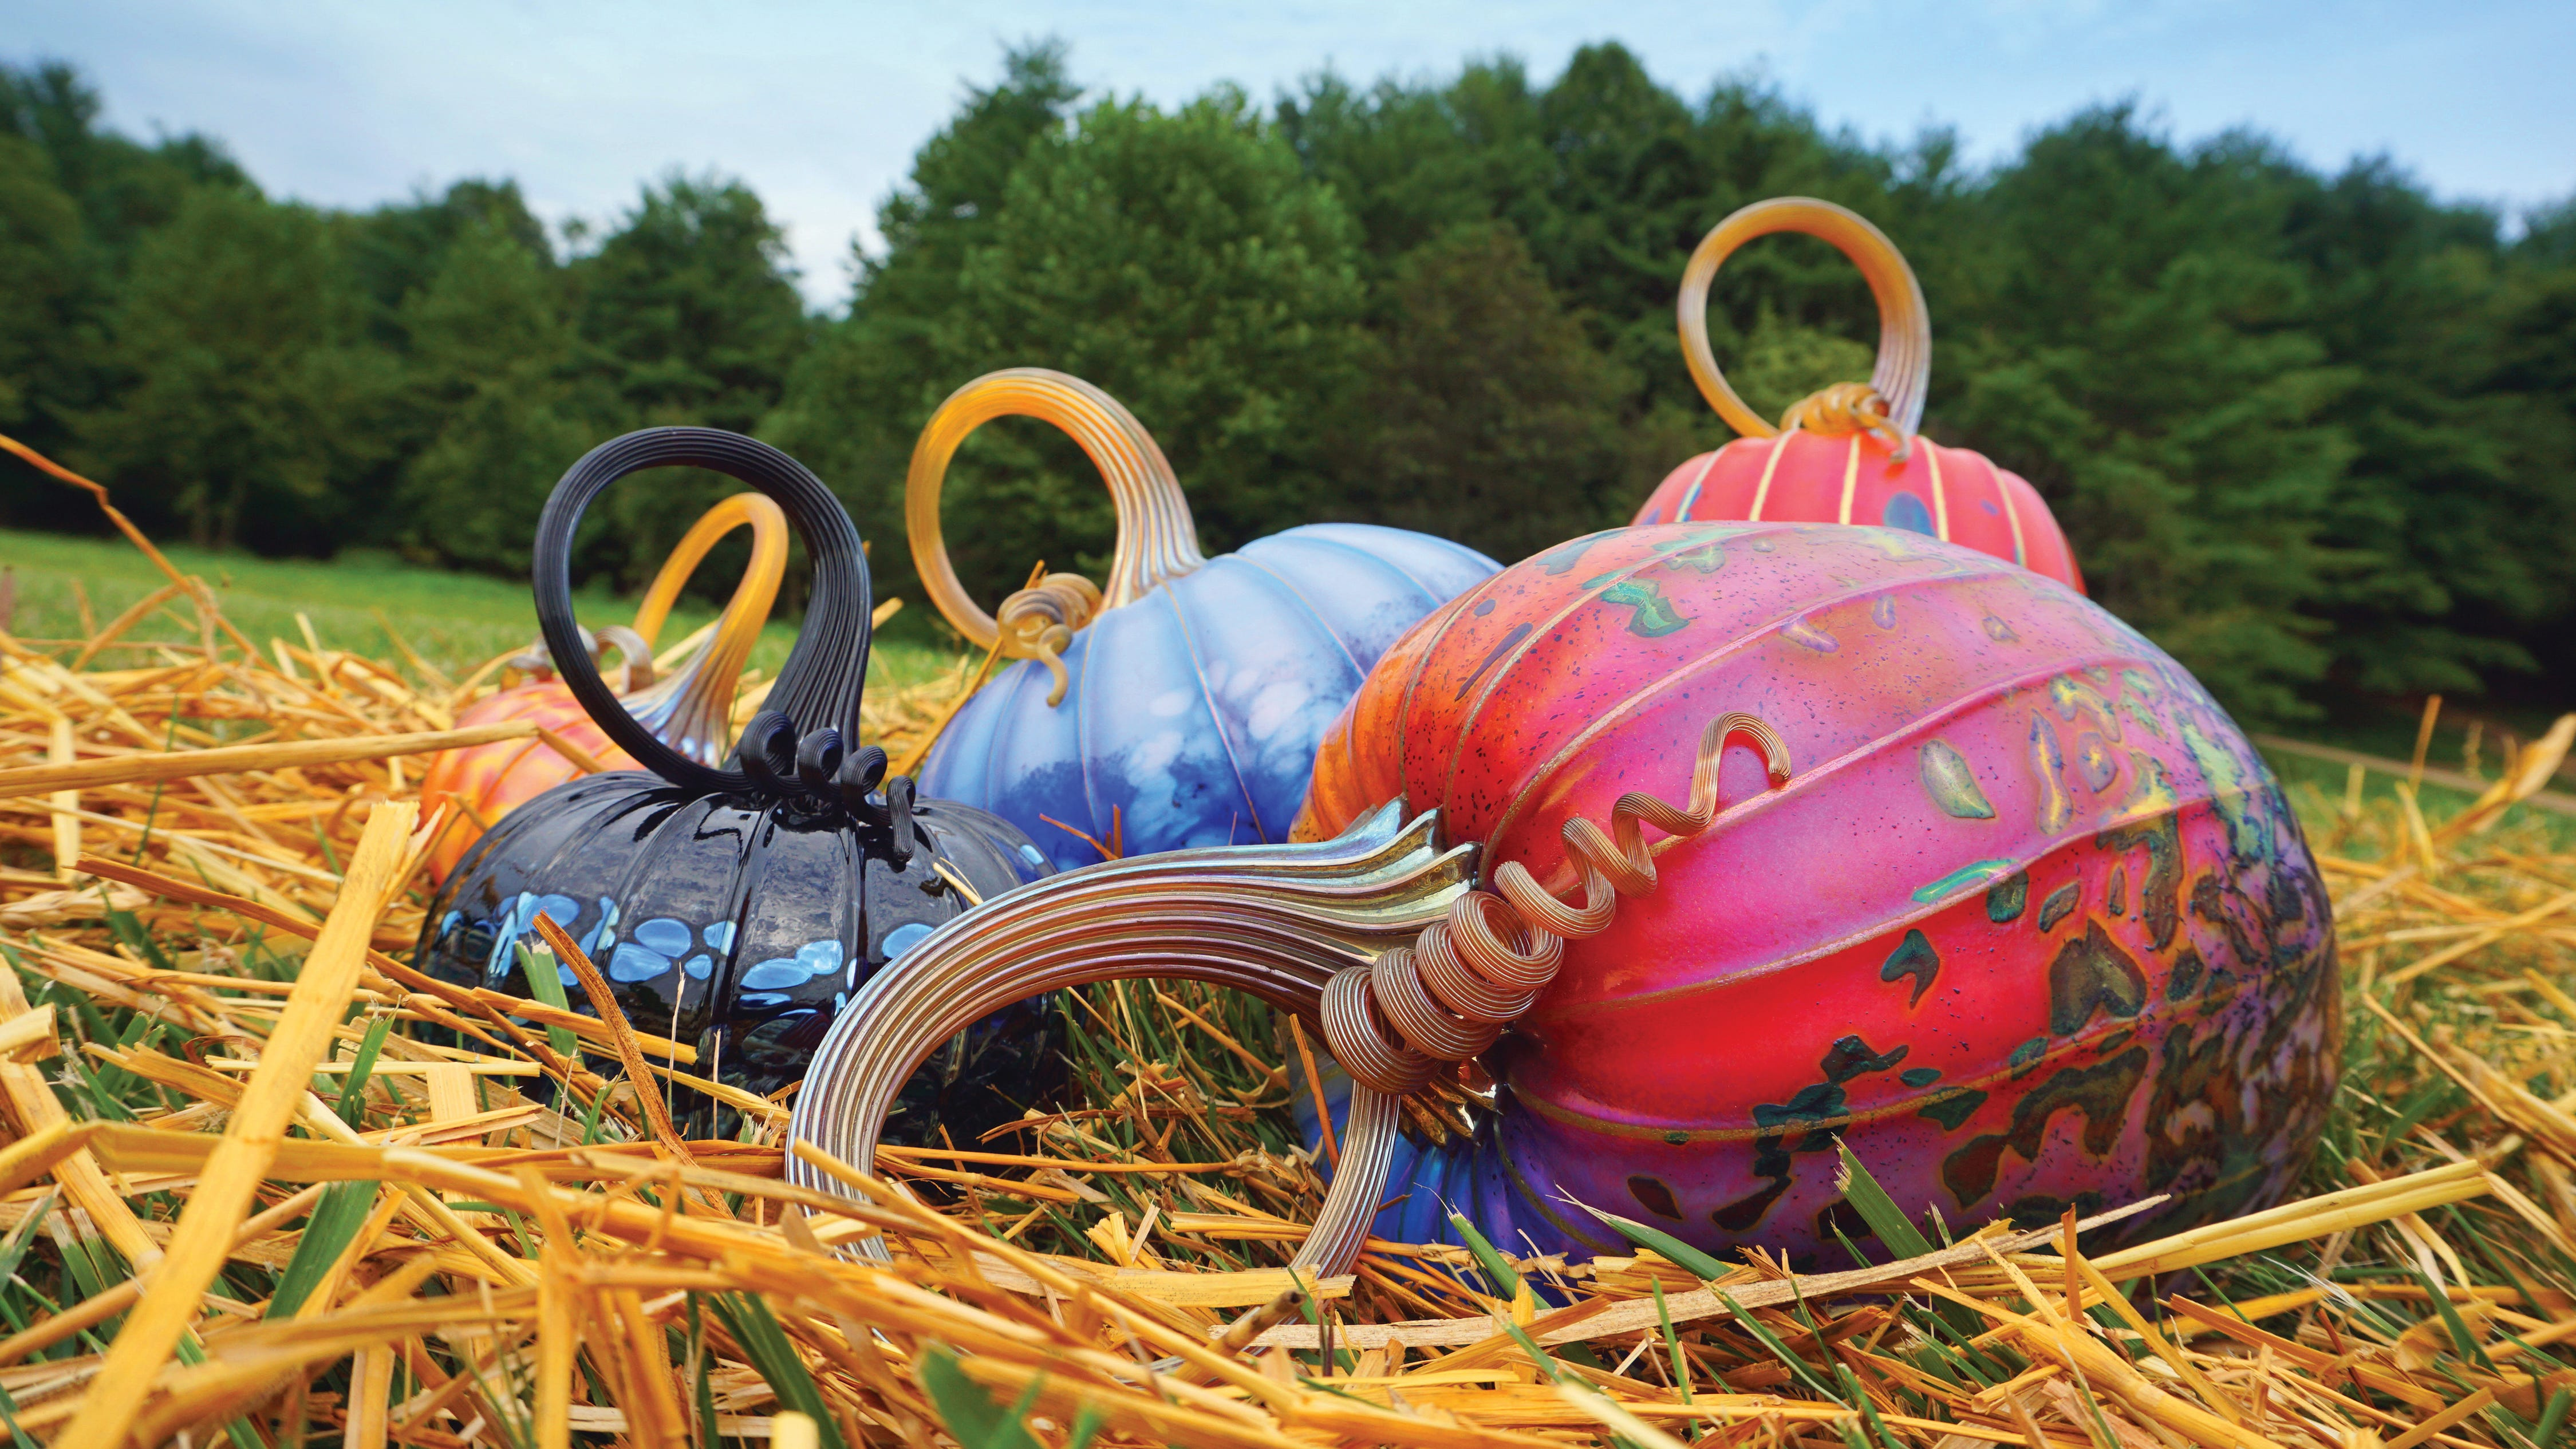 Festival to feature more than 2,000 hand-blown glass pumpkins